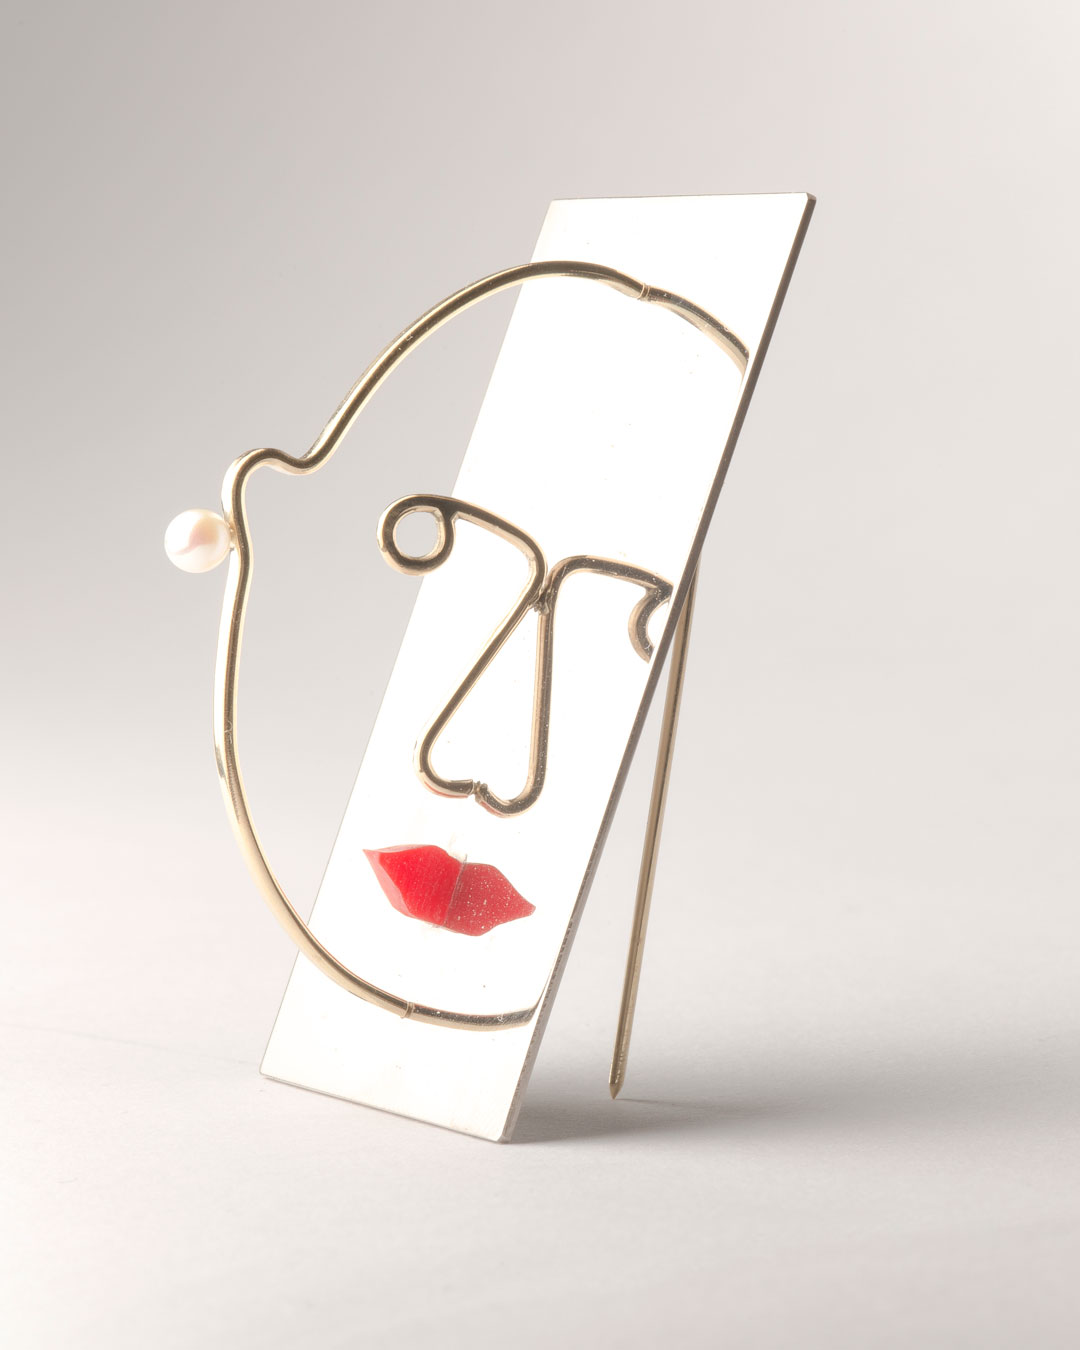 Herman Hermsen, Vanity, 2019, brooch; white gold, yellow gold, pearl, plastic, 60 x 40 x 30 mm, €4850